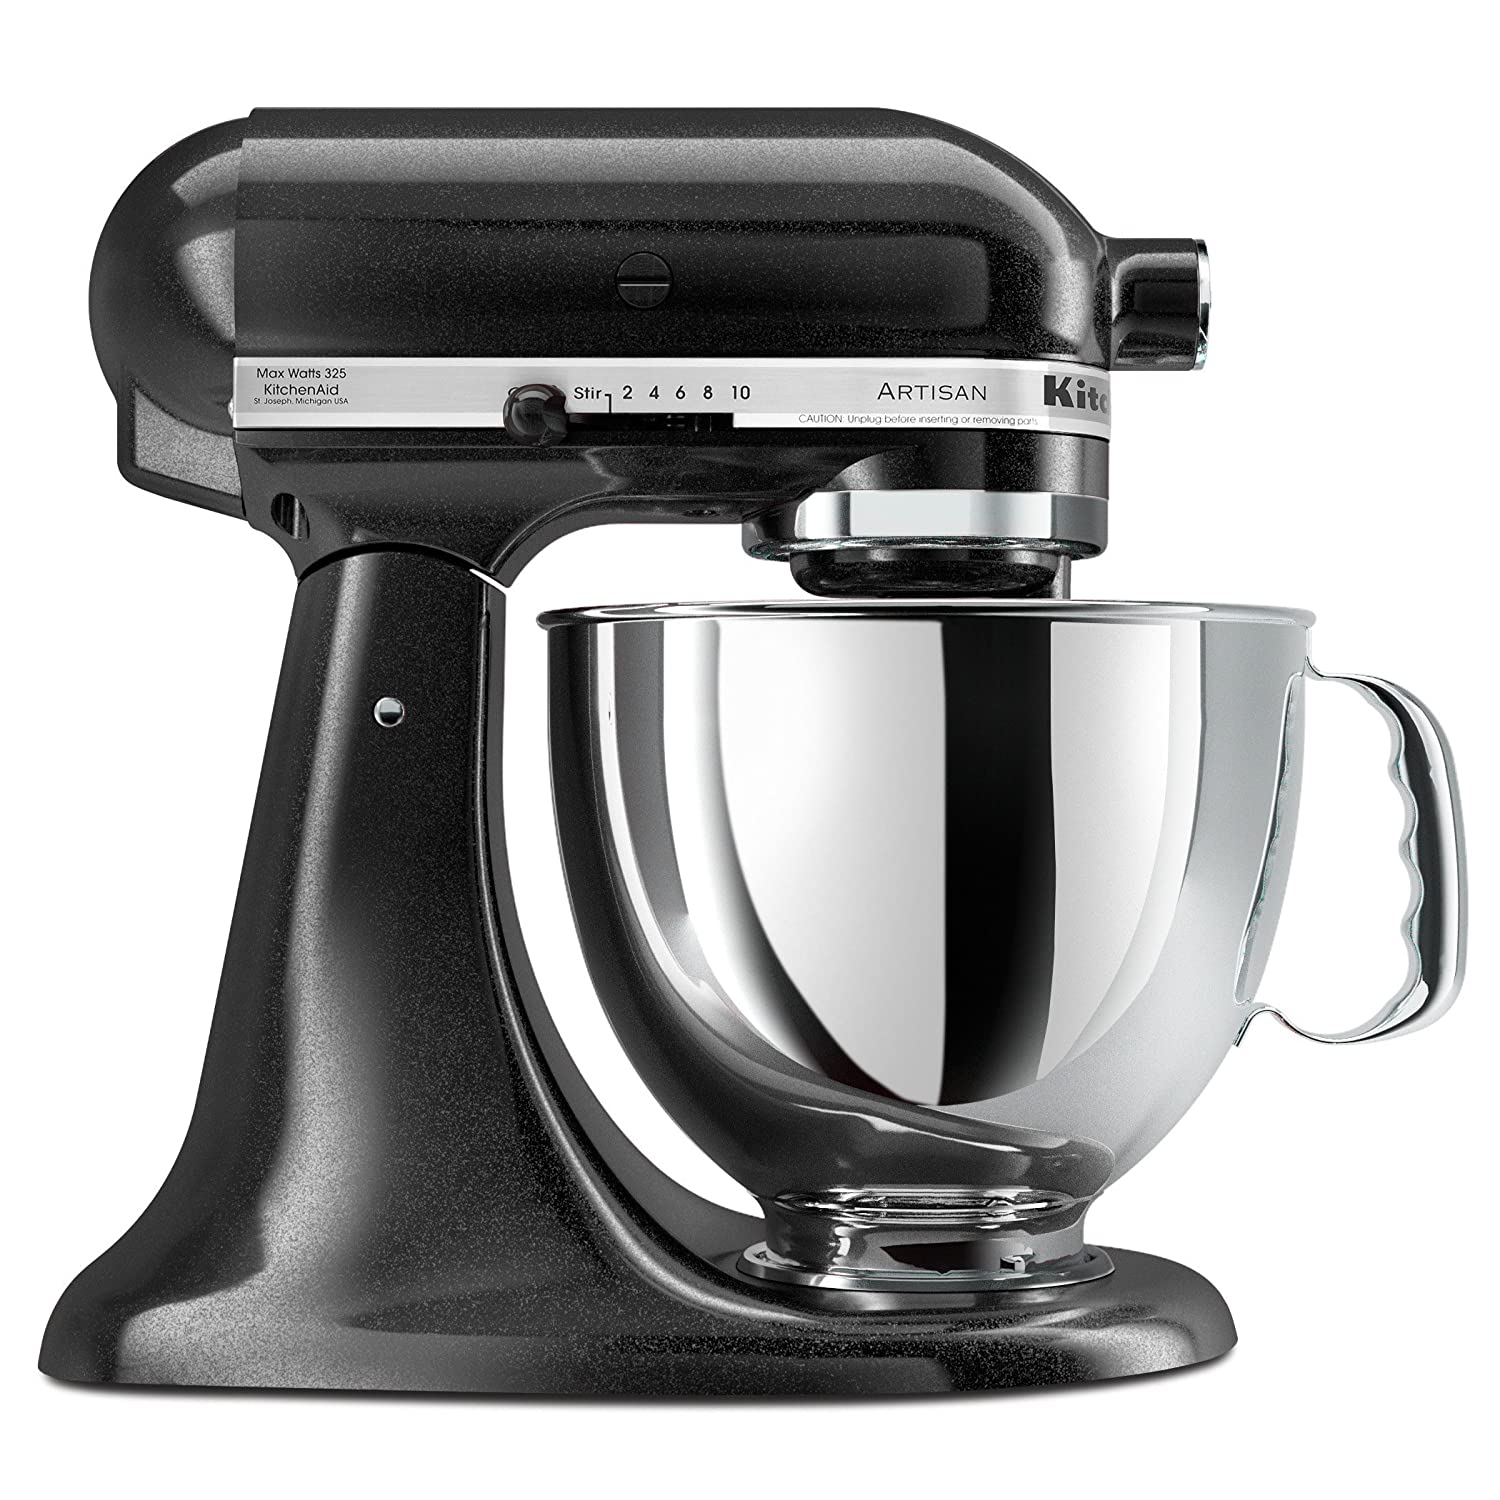 KitchenAid Stand Mixers Amp KitchenAid Stand Mixer Attachments Something For Everyone Gift Ideas